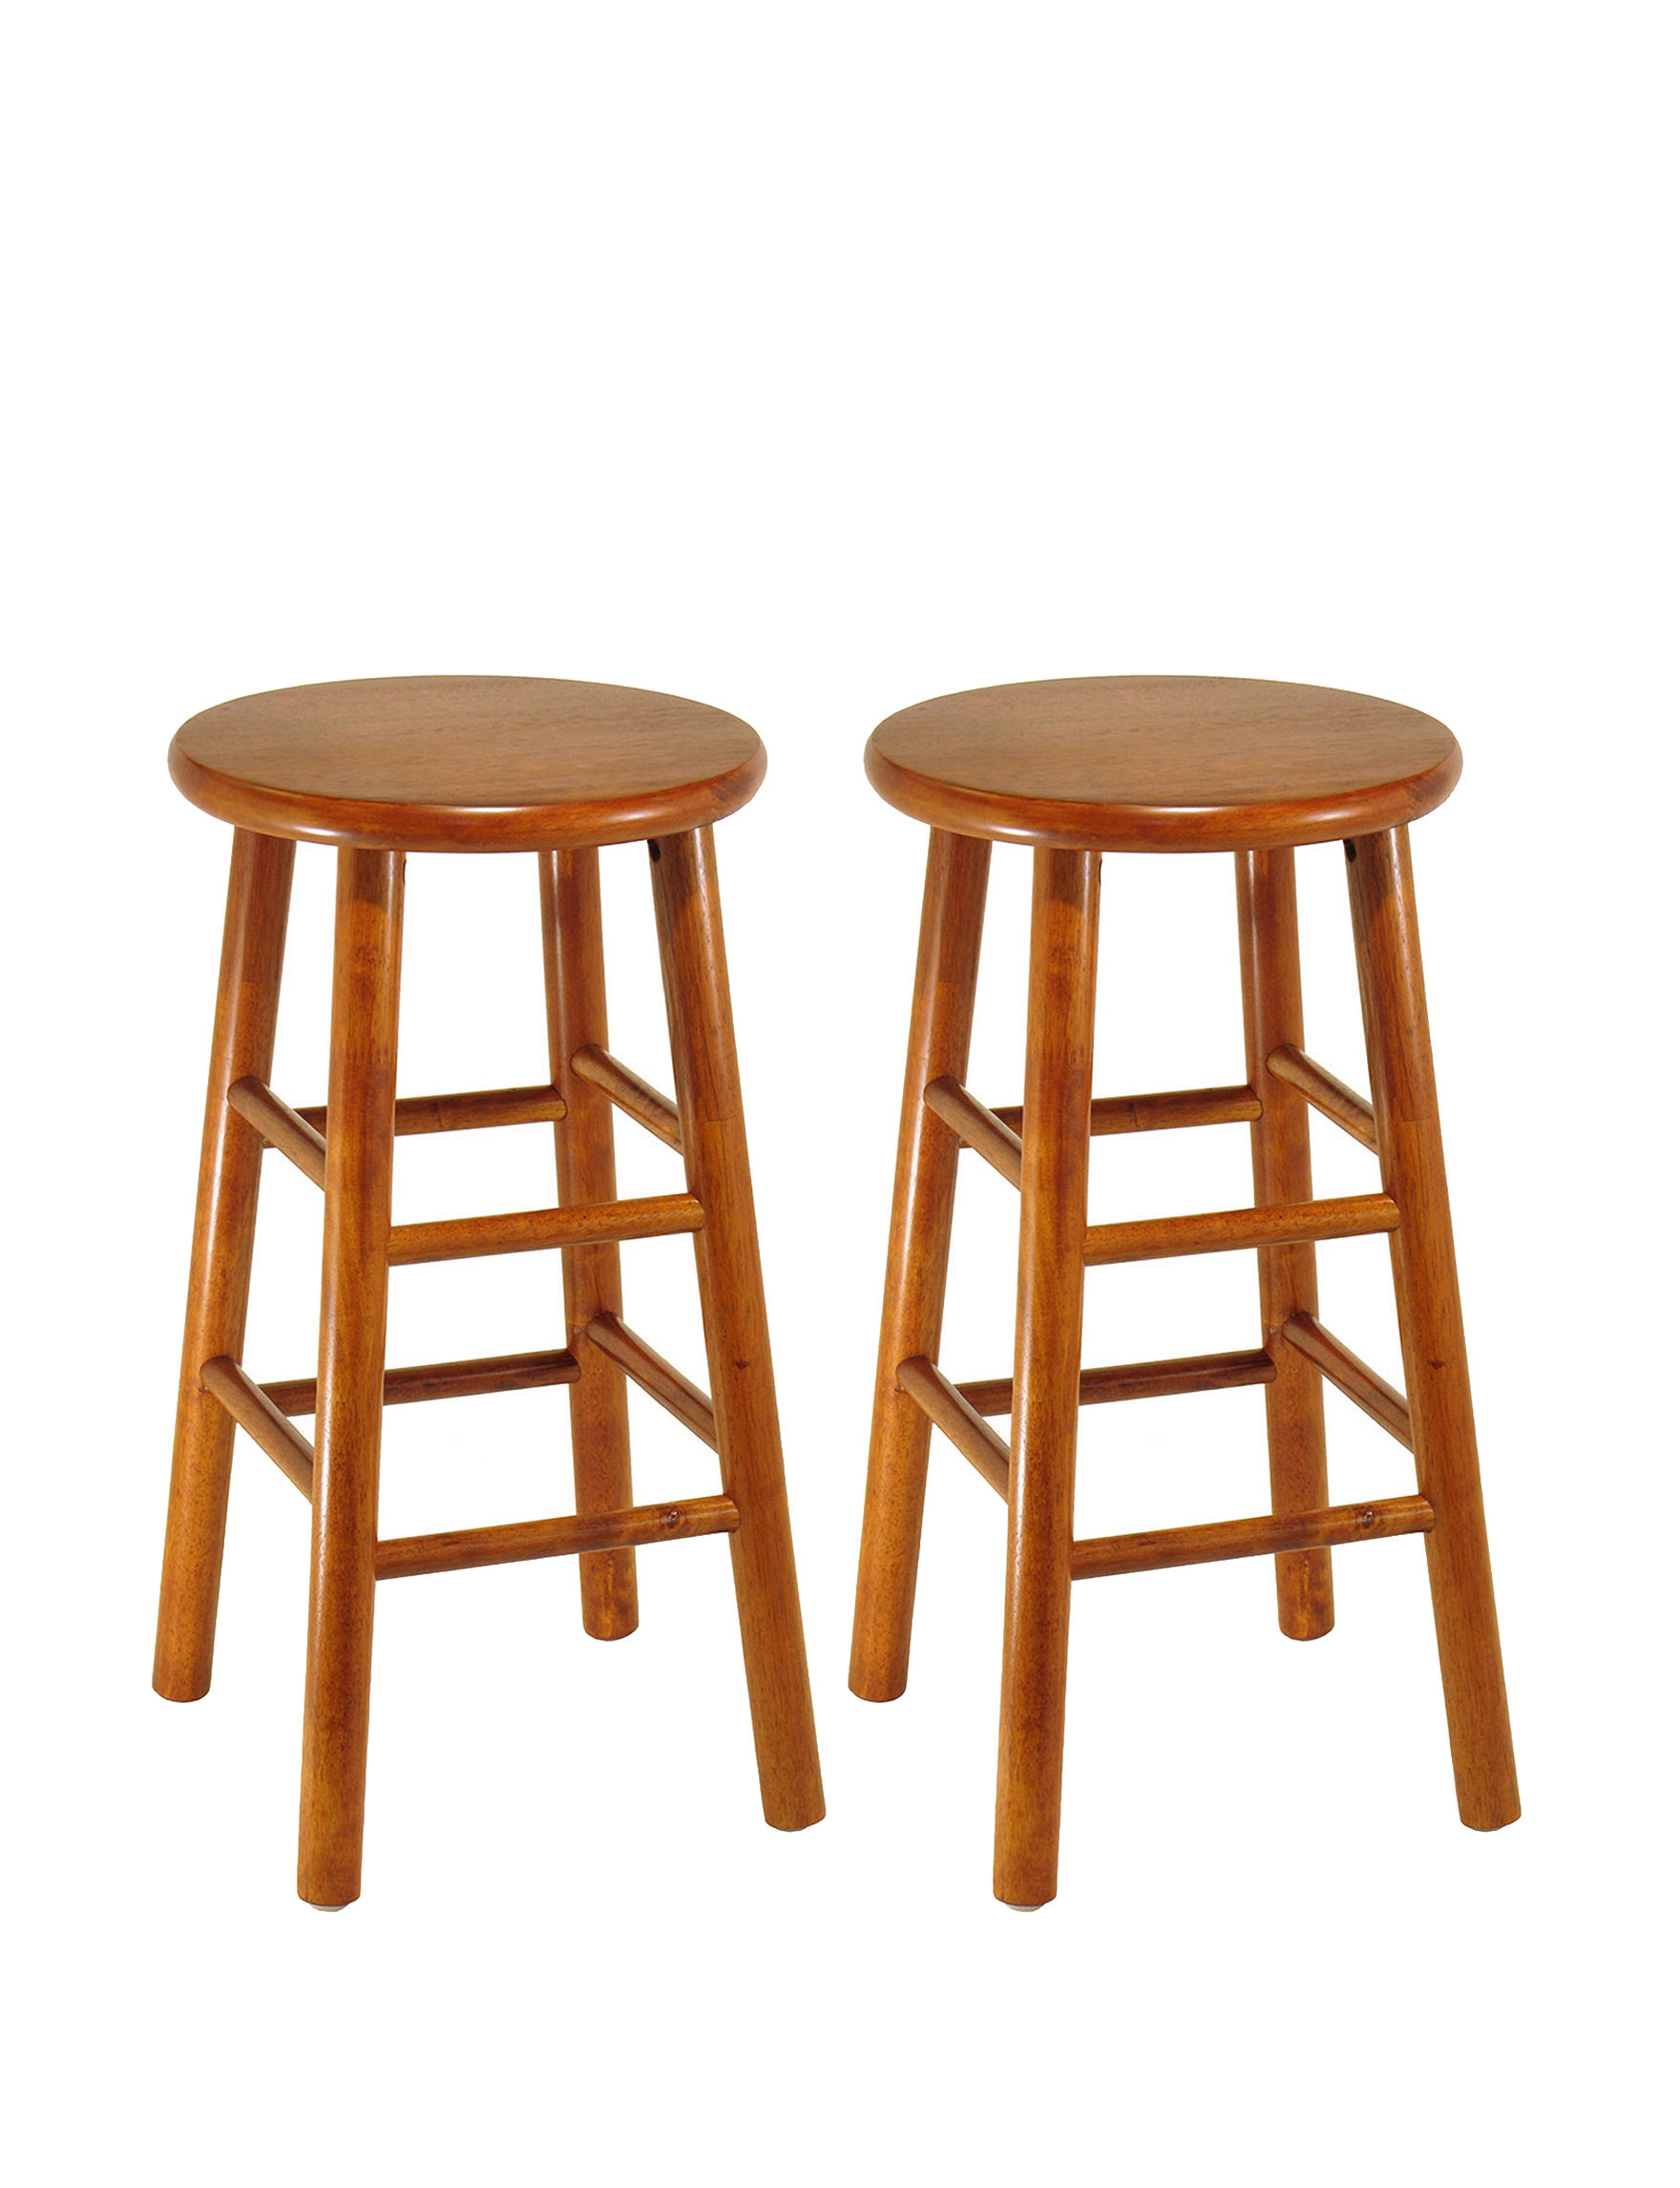 Winsome Cherry Finish Bar & Kitchen Stools Kitchen & Dining Furniture